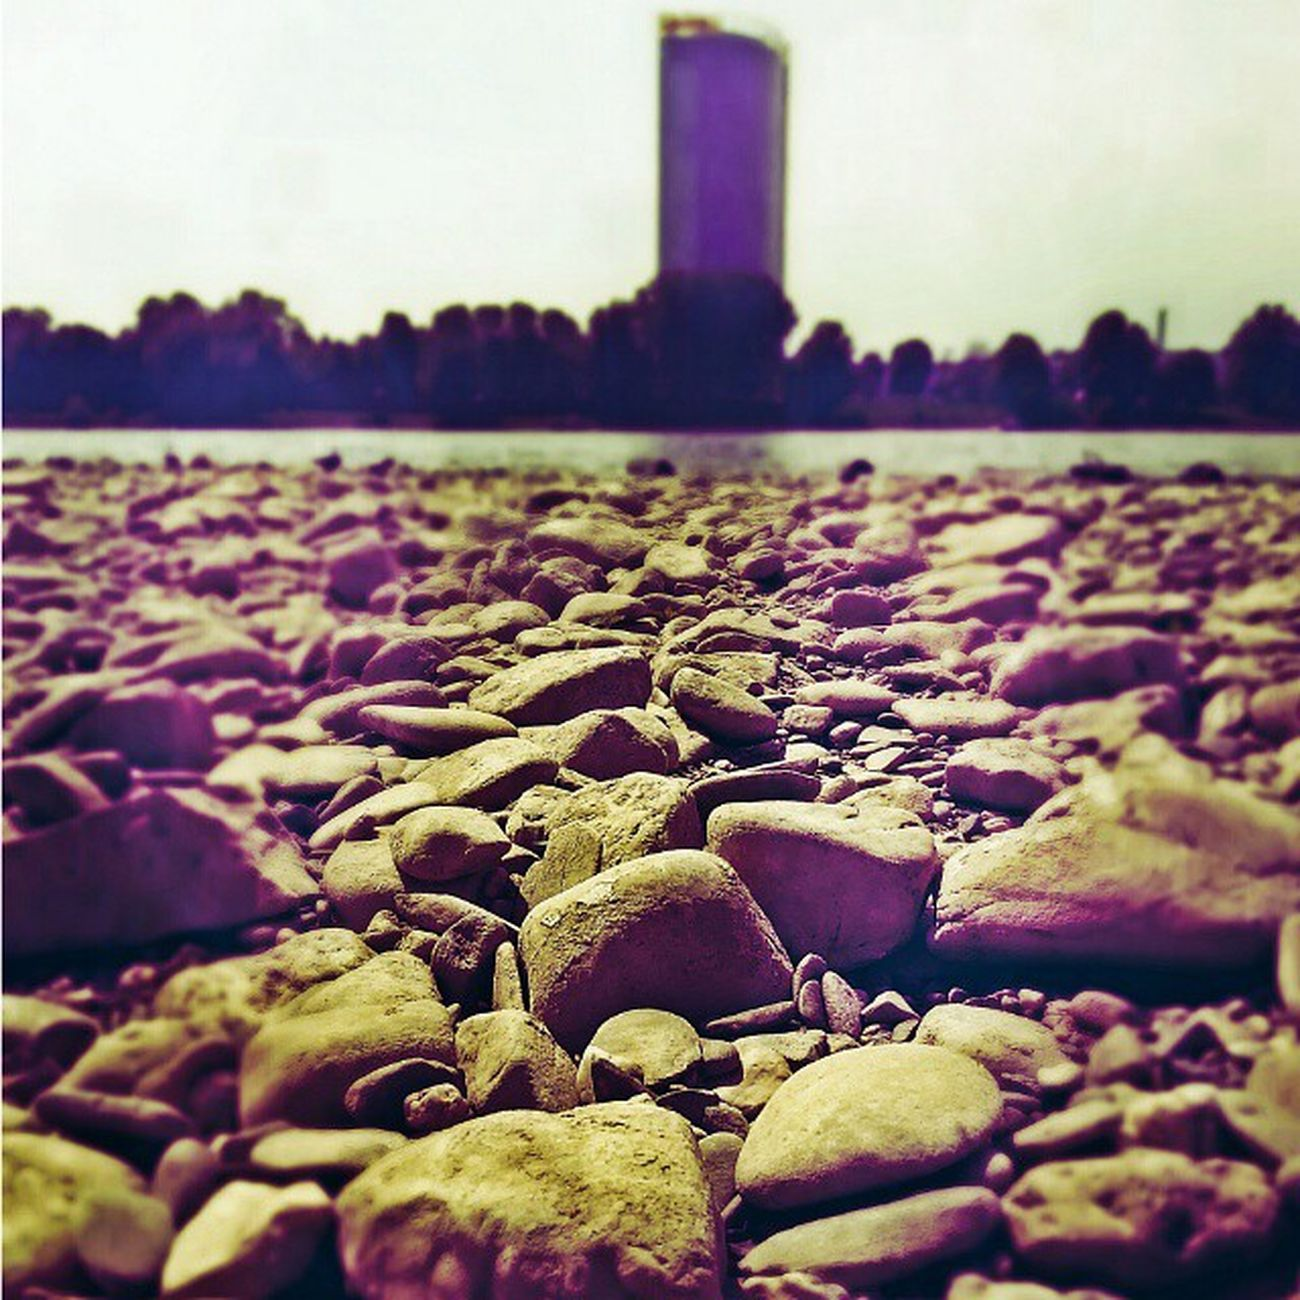 Posttower Bonn Deutschland Food Foodporn Germany Post Post Tower Posttower Rhine Steine Stones Tower